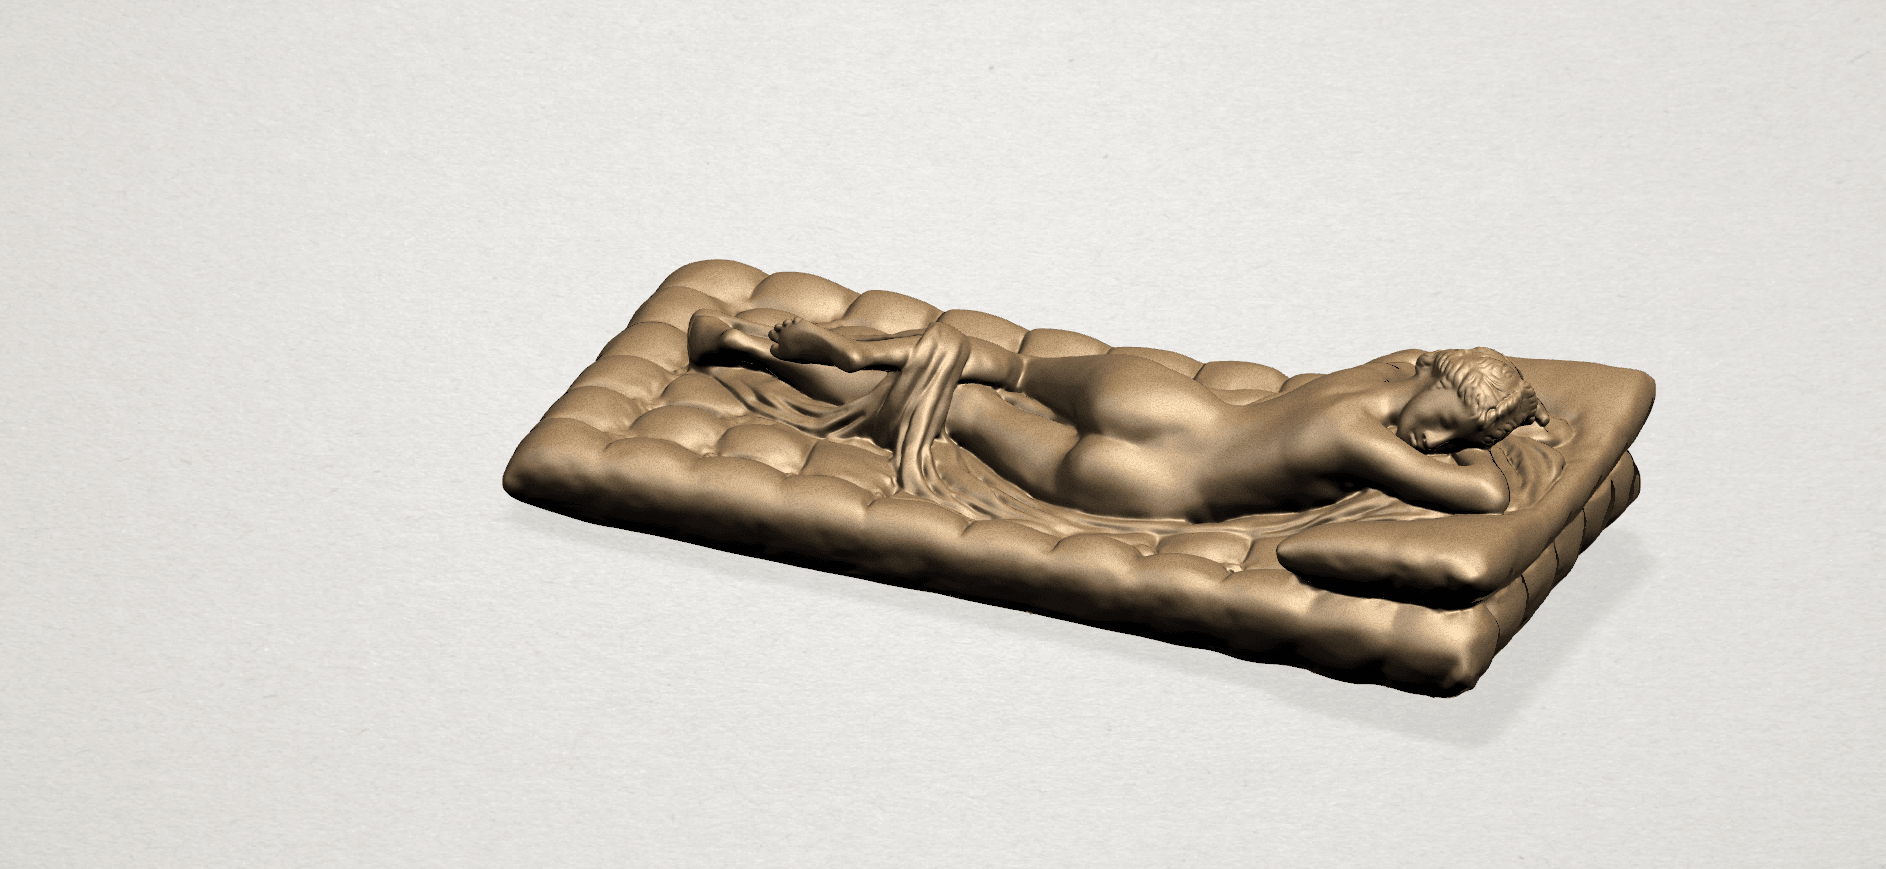 Naked Body Lying on Bed A02.png Download free STL file Naked Girl - Lying on Bed 02 • Object to 3D print, GeorgesNikkei